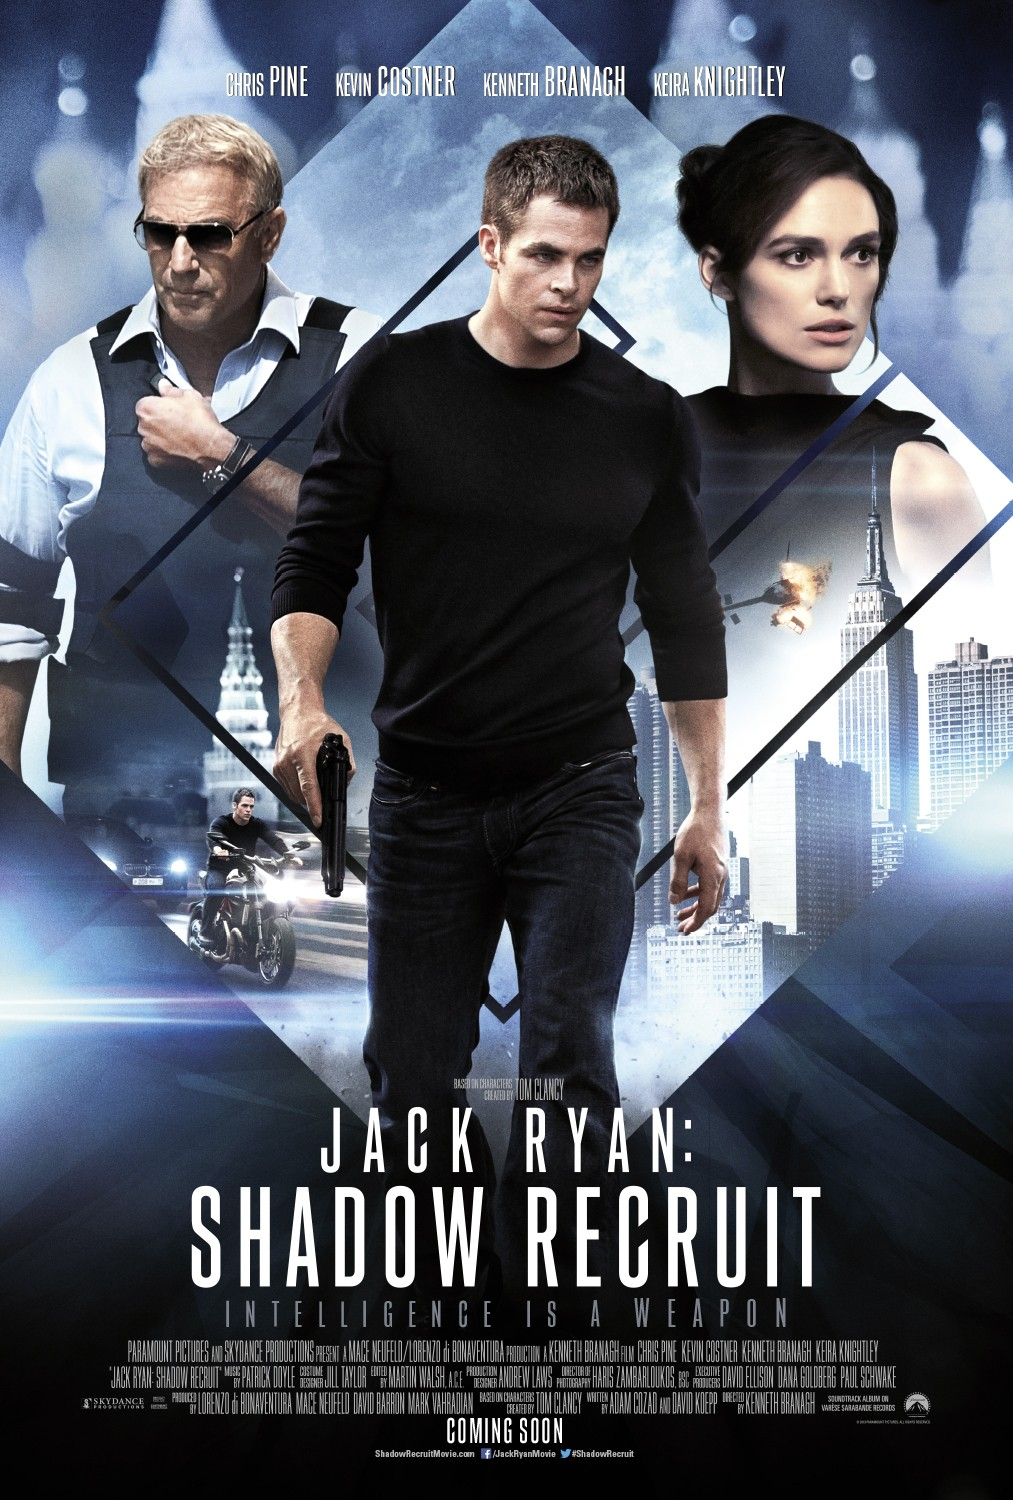 Jack Ryan Shadow Recruit-Official Poster Banner PROMO POSTER-29NOVEMBRO2013